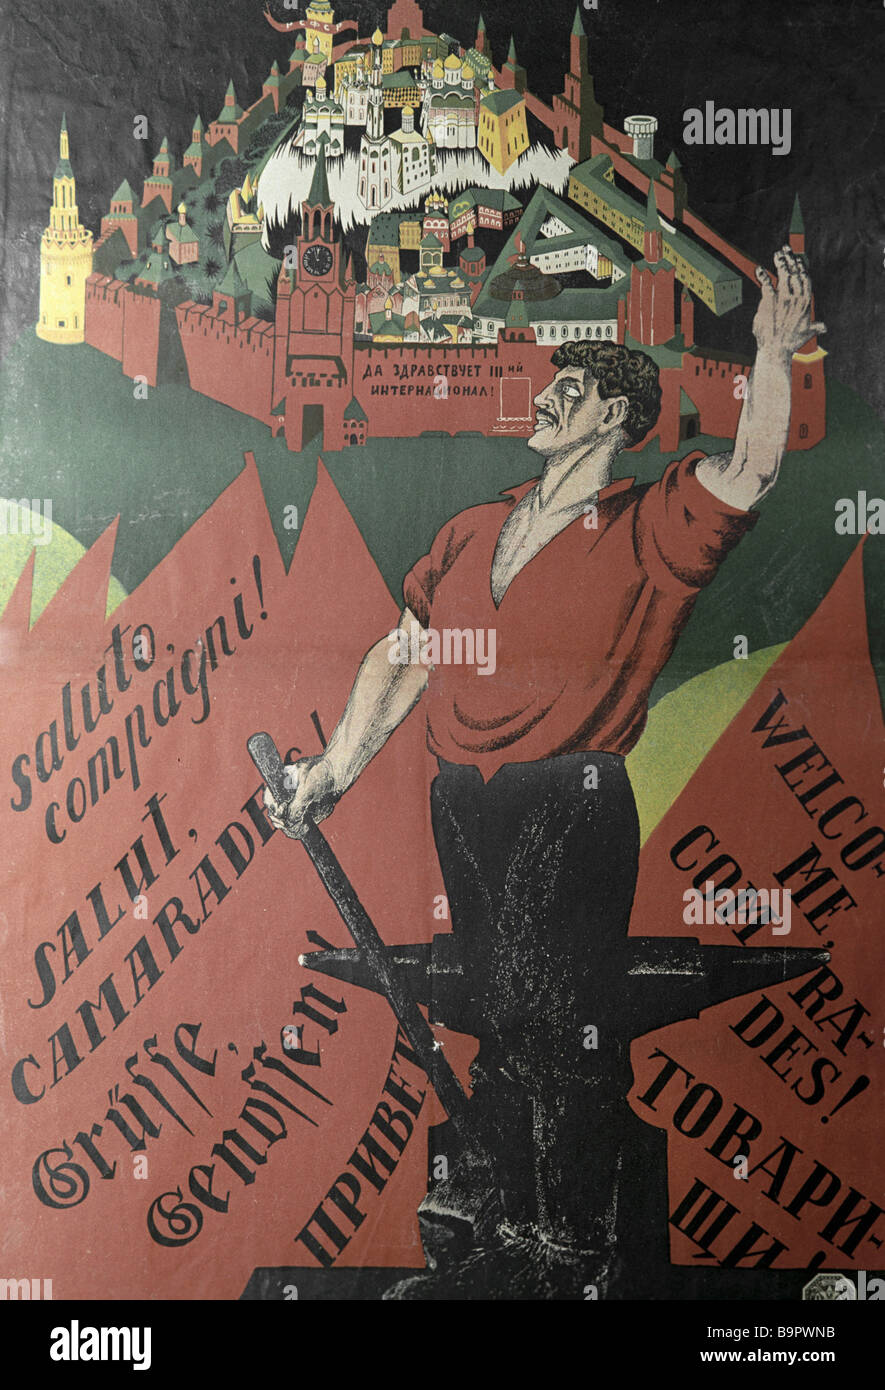 A replication of Moore s poster 3rd International forever 1920 out of the V I Lenin s library holdings - Stock Image